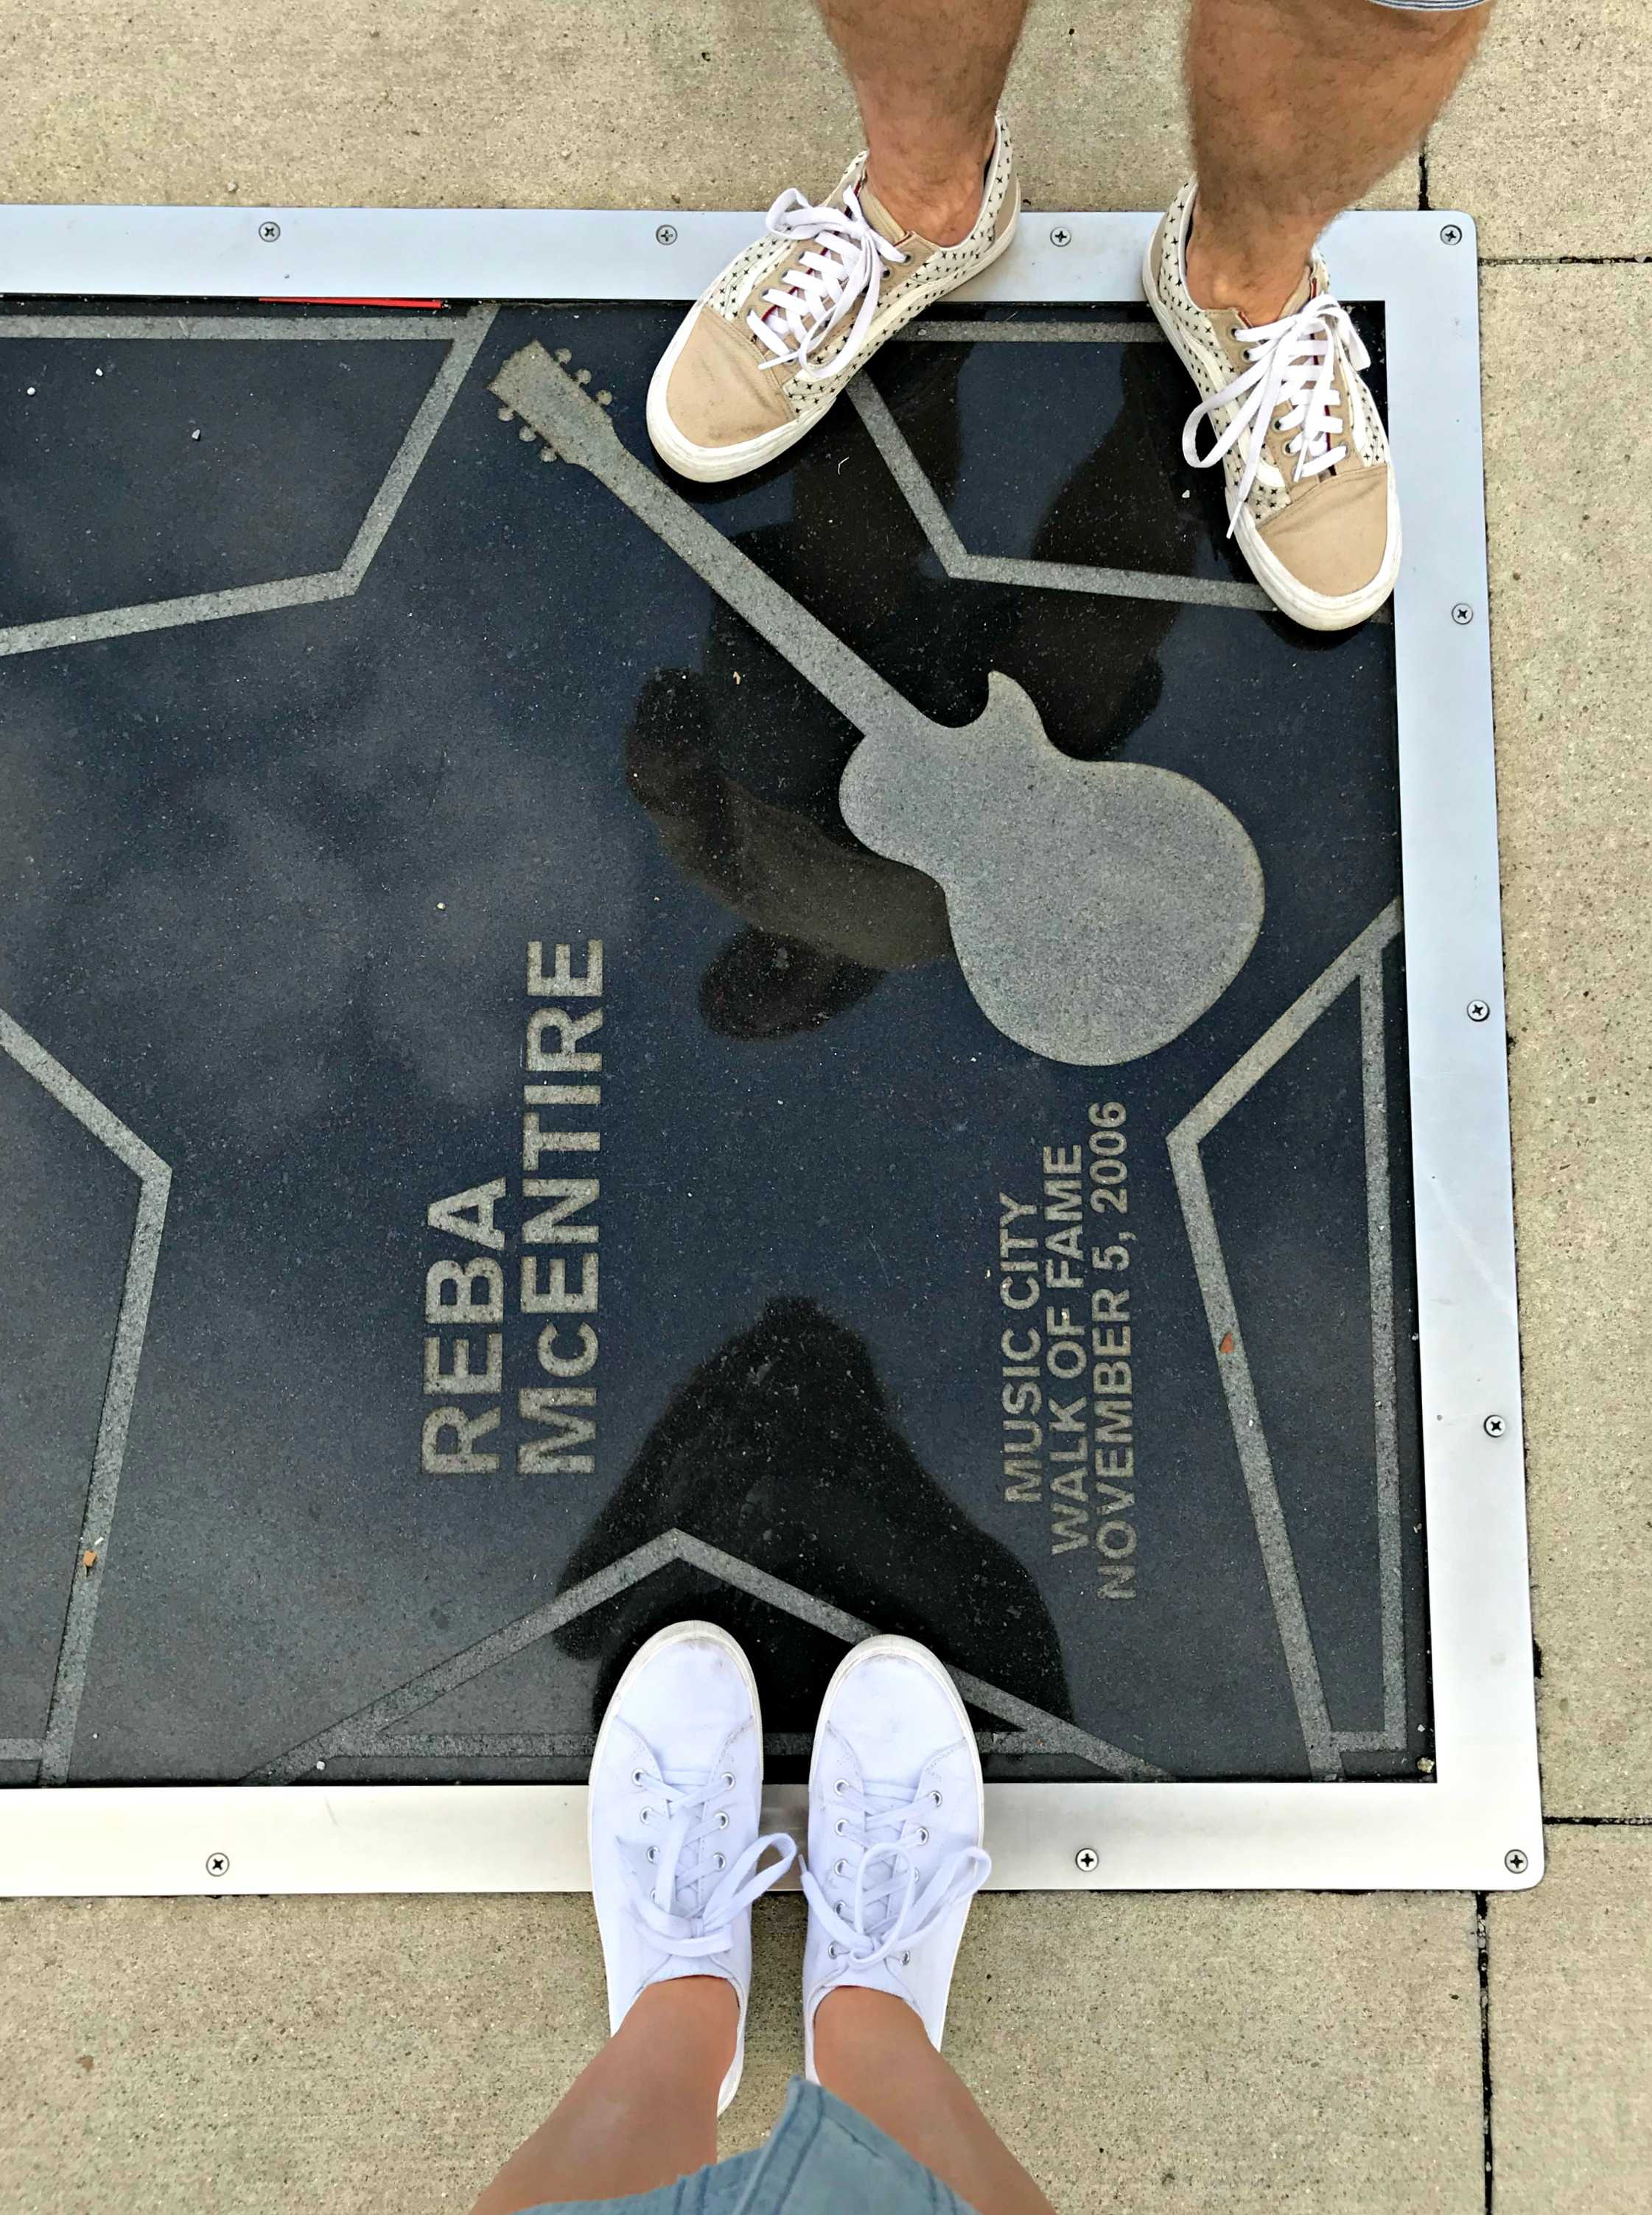 nashville music city walk of fame